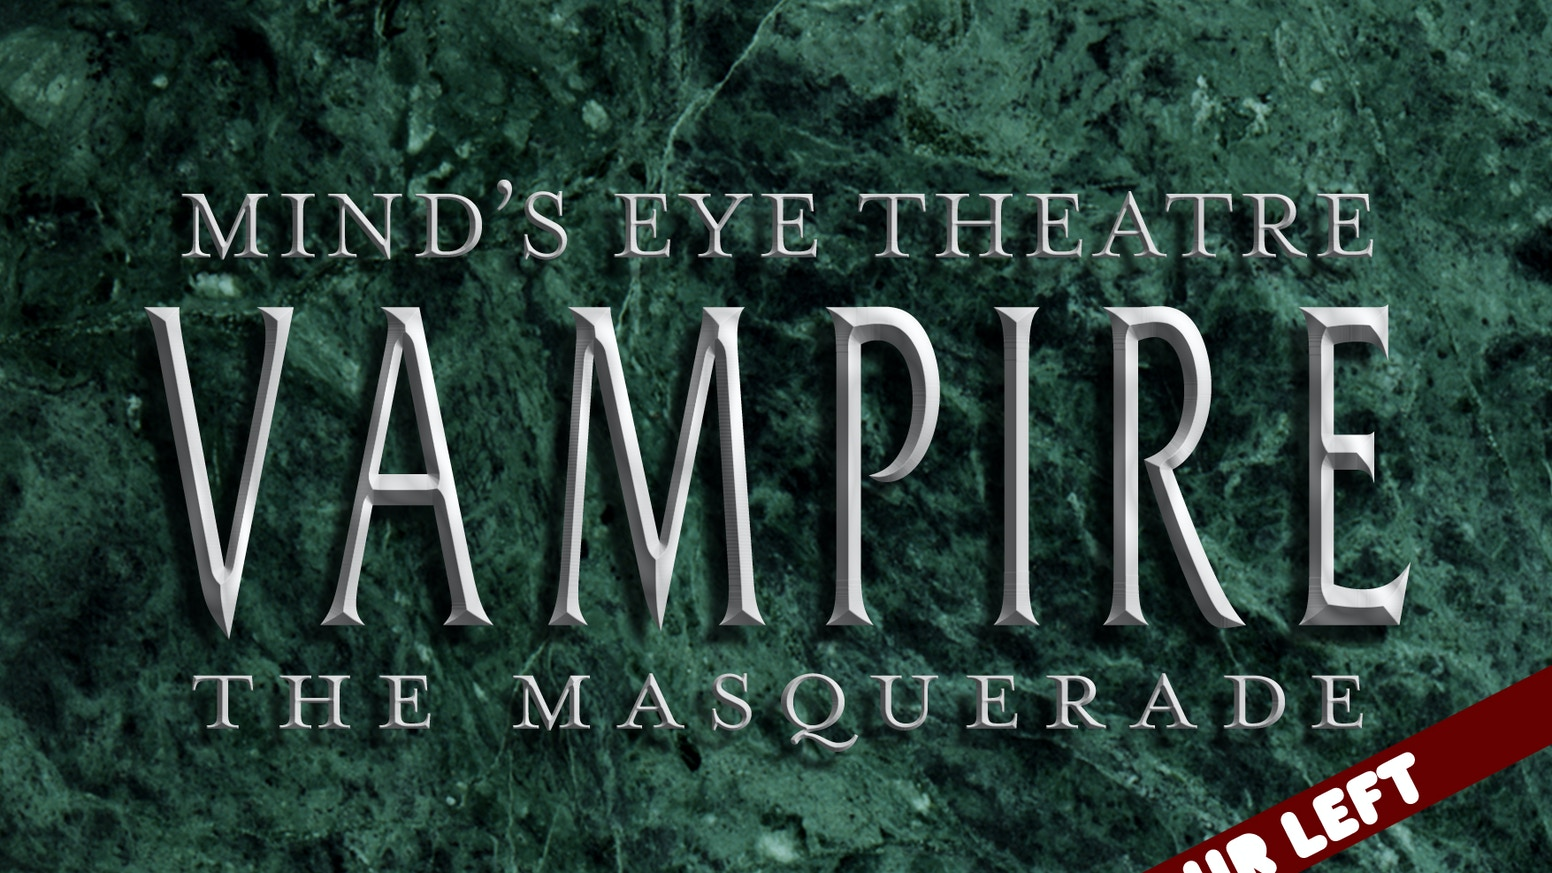 With your help, we created the ultimate Mind's Eye Theatre: Vampire The Masquerade book! Now get your own!